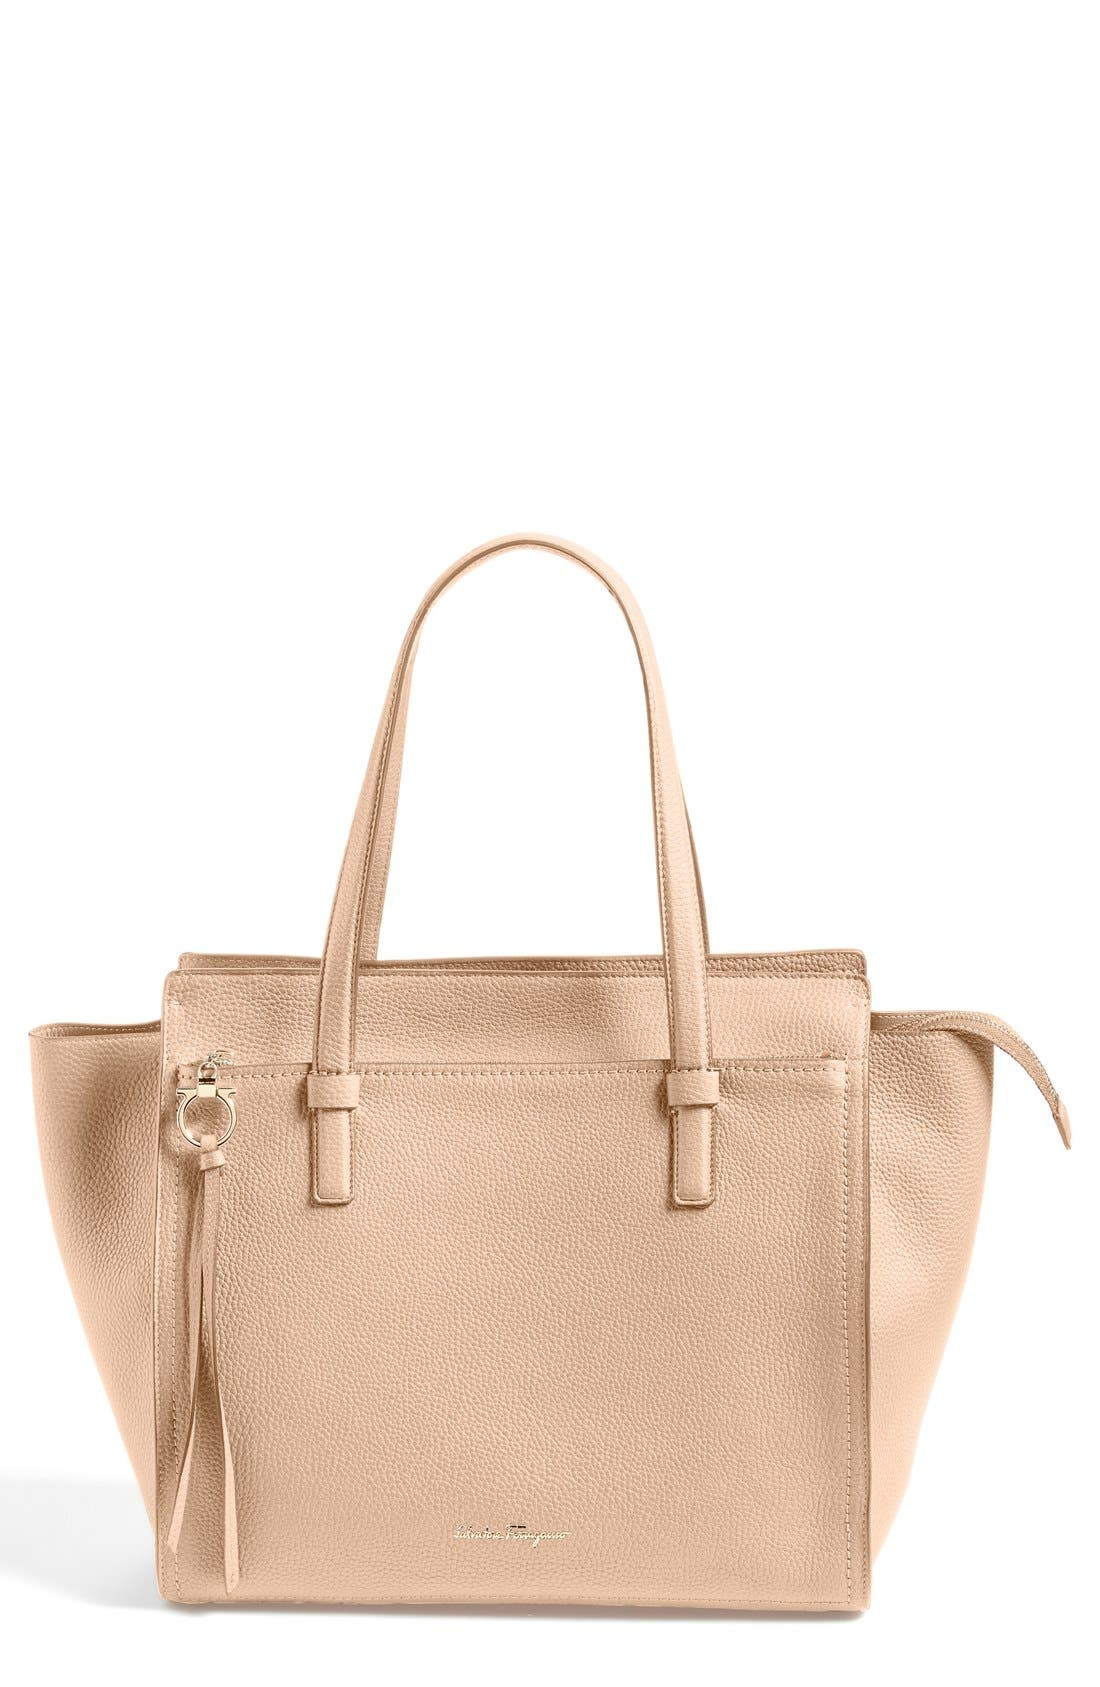 Salvatore Ferragamo Leather Tote